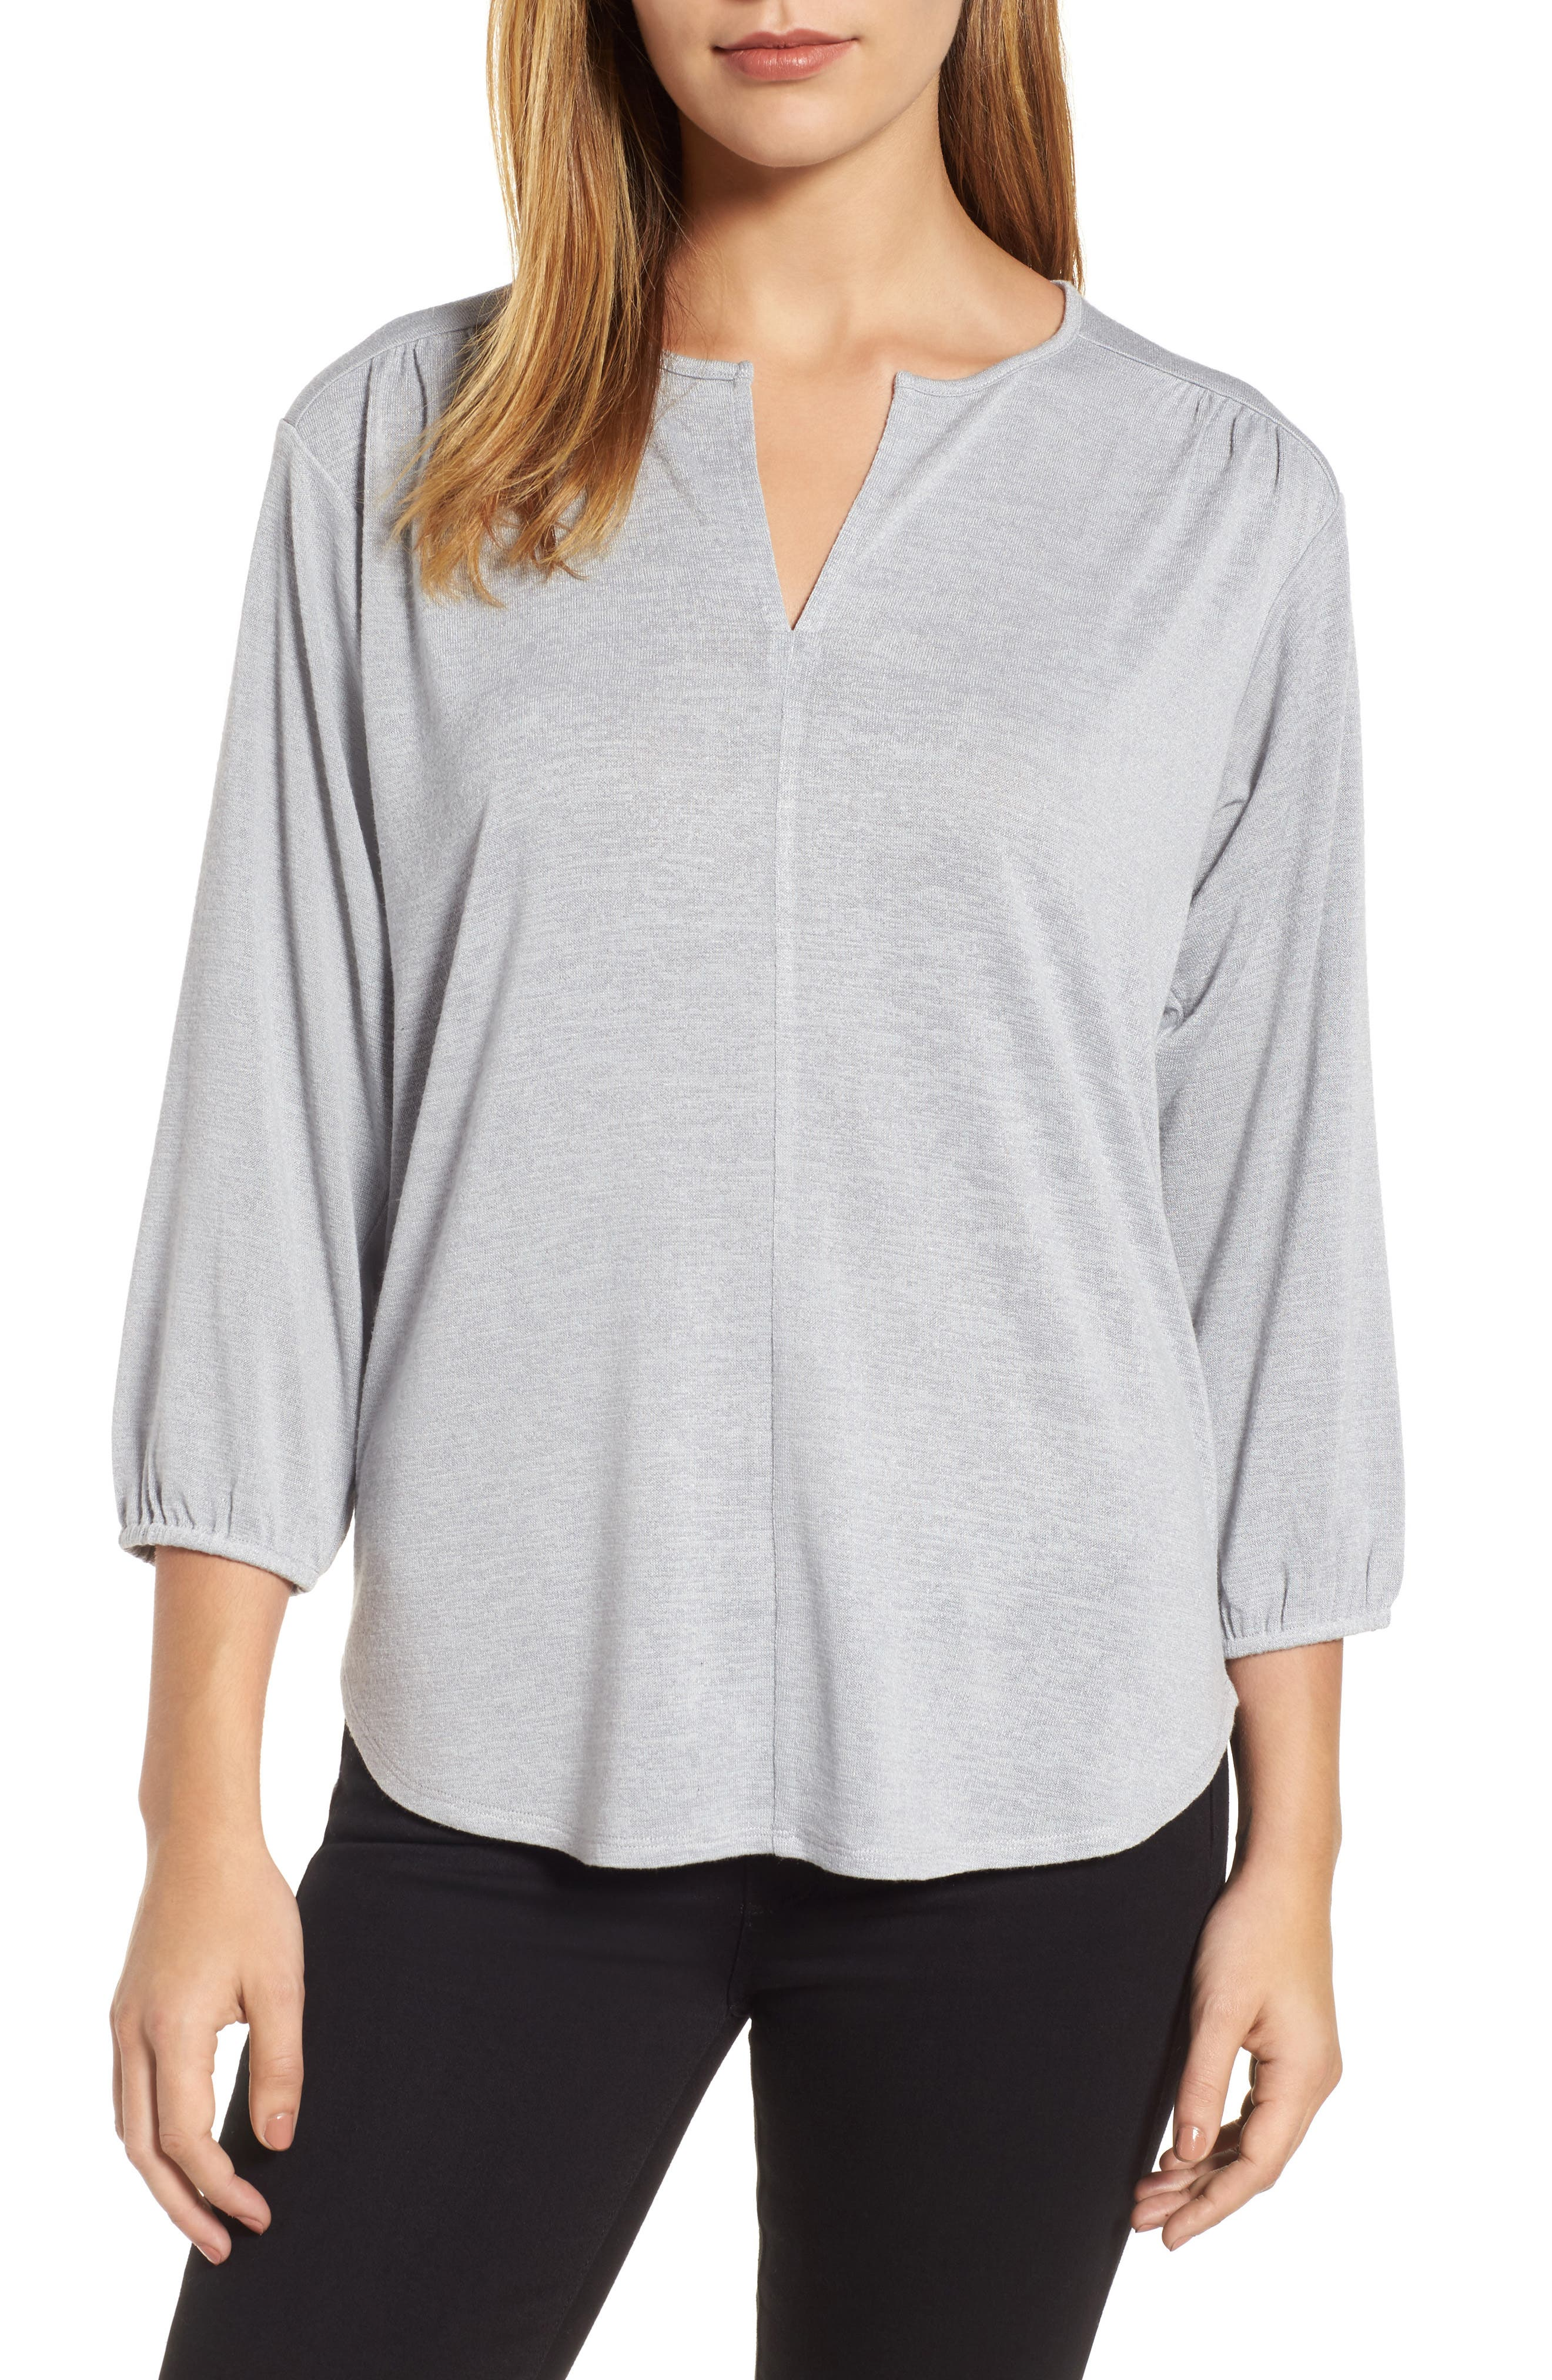 Snowfall Stretch Knit Top,                         Main,                         color, Icy Grey